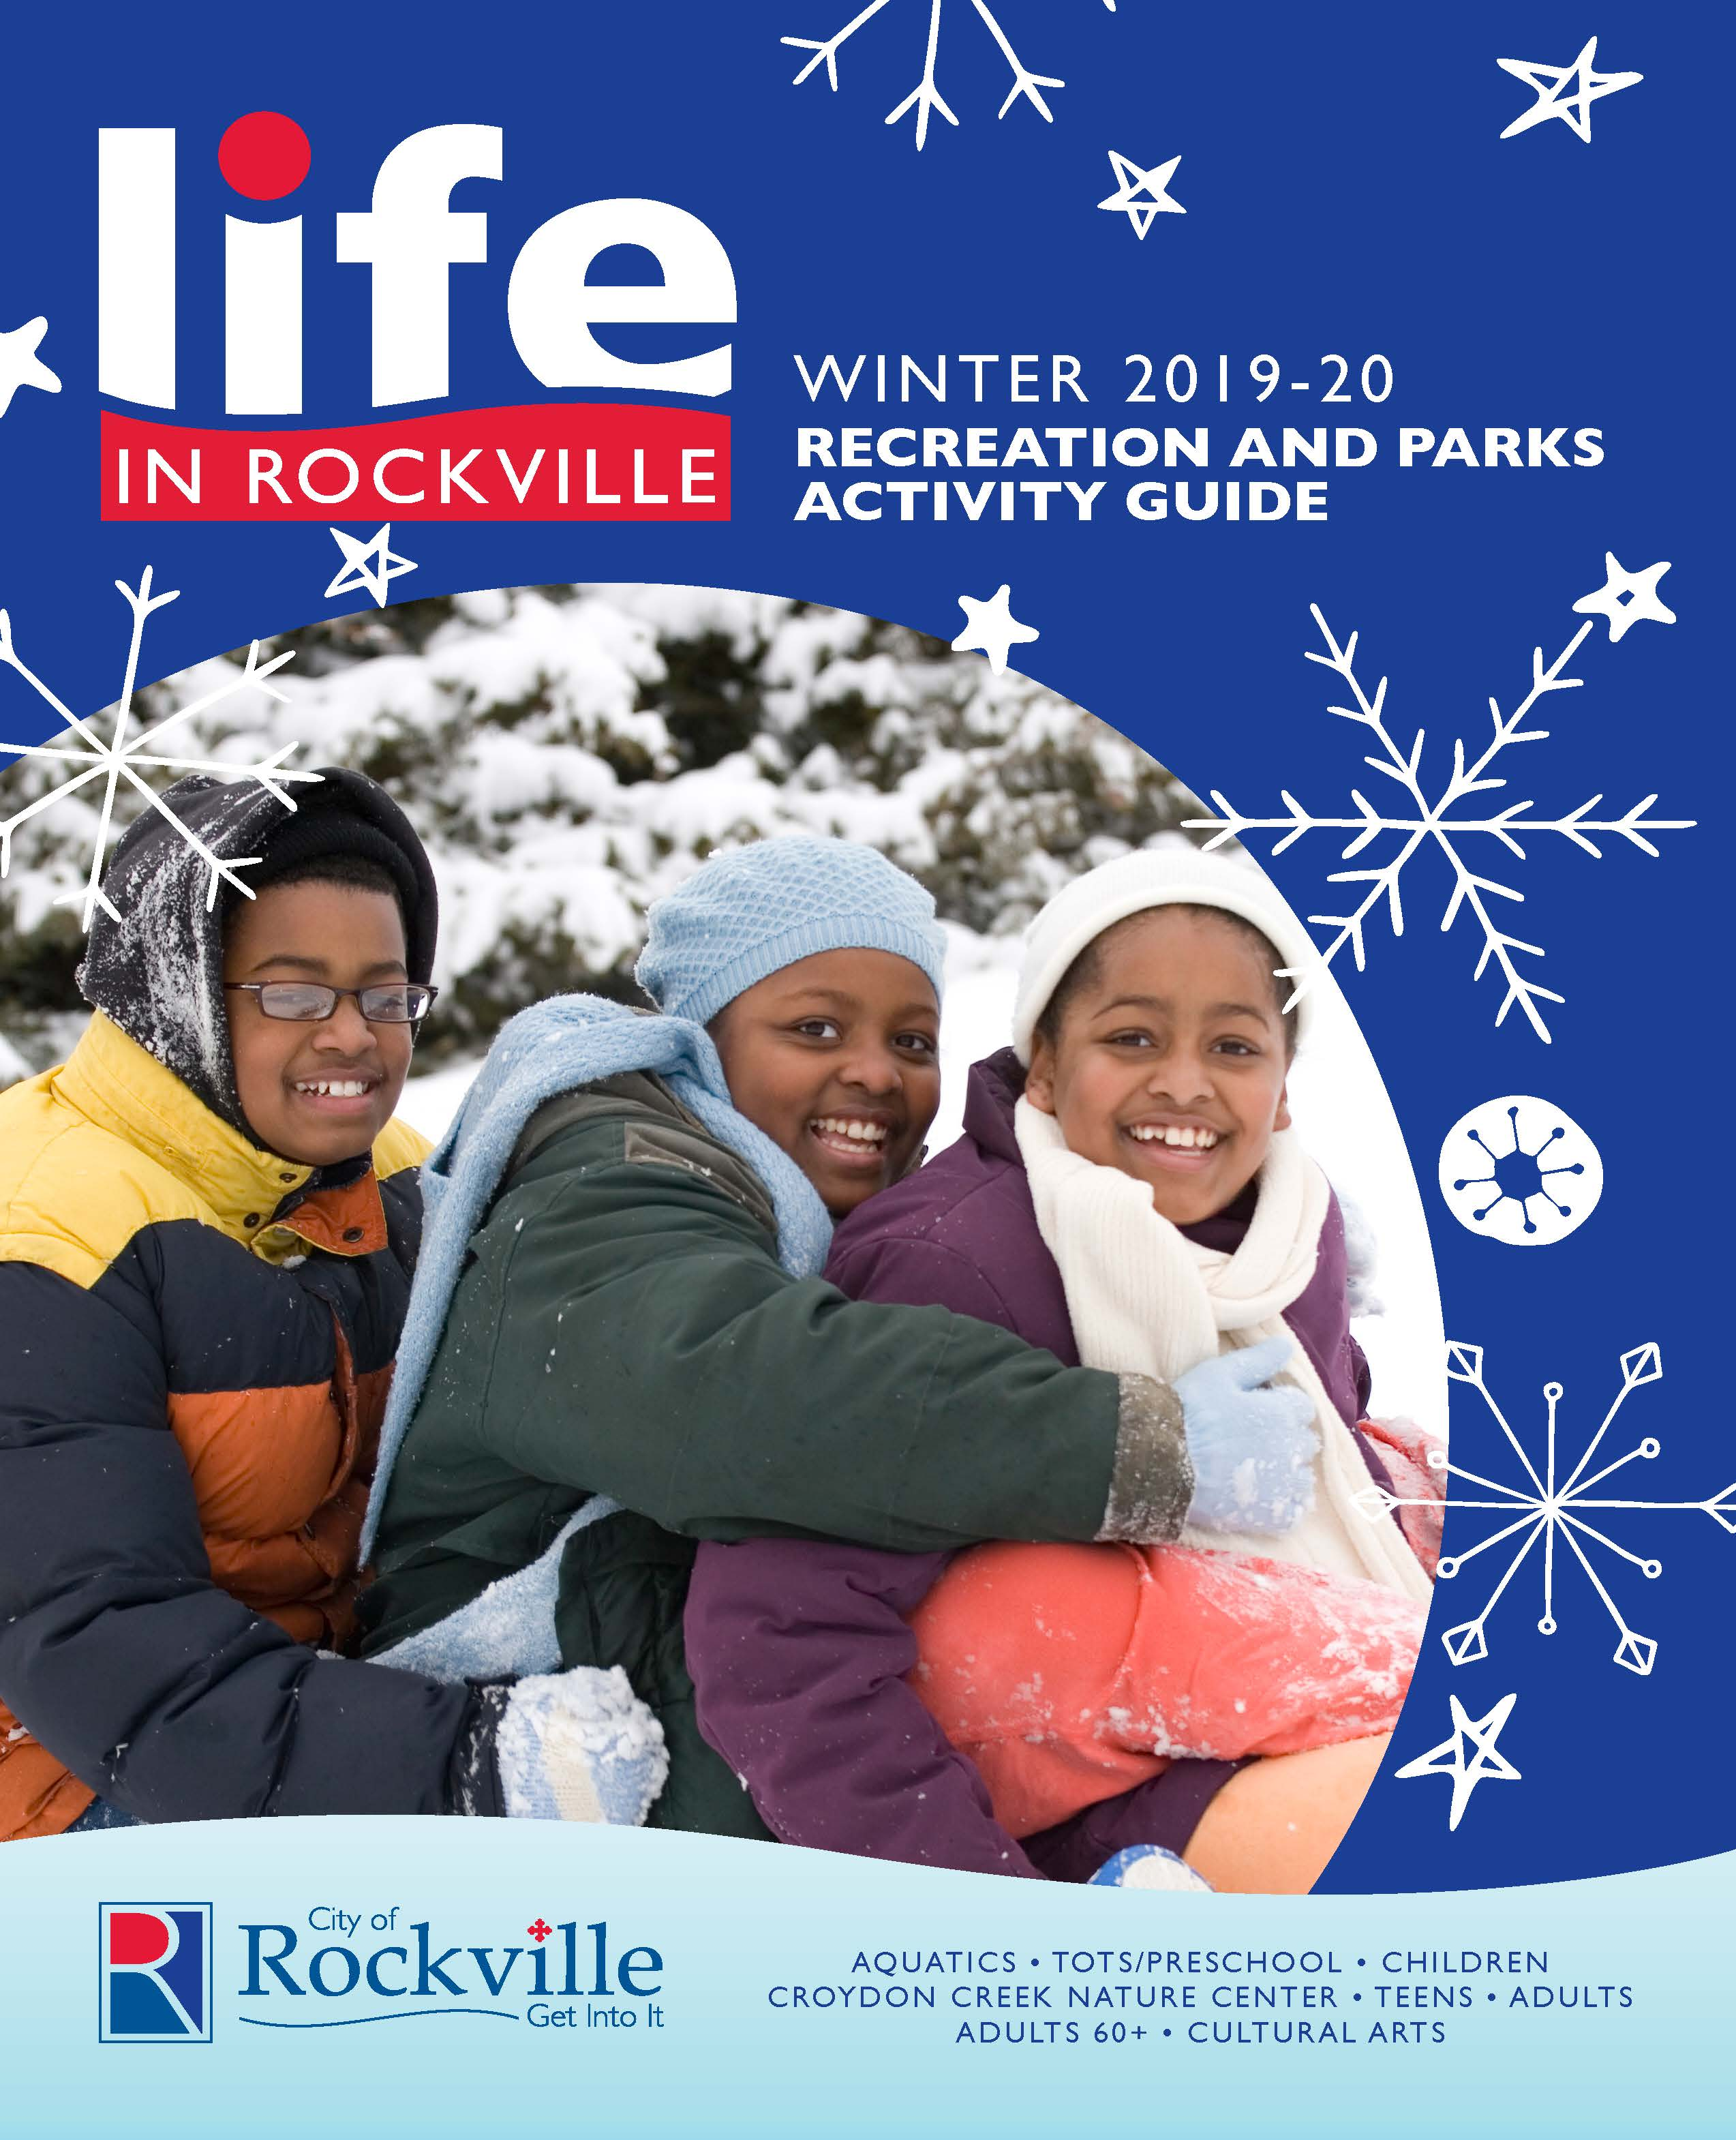 Winter 2020 Life in Rockville Recreation and Parks Activity Guide